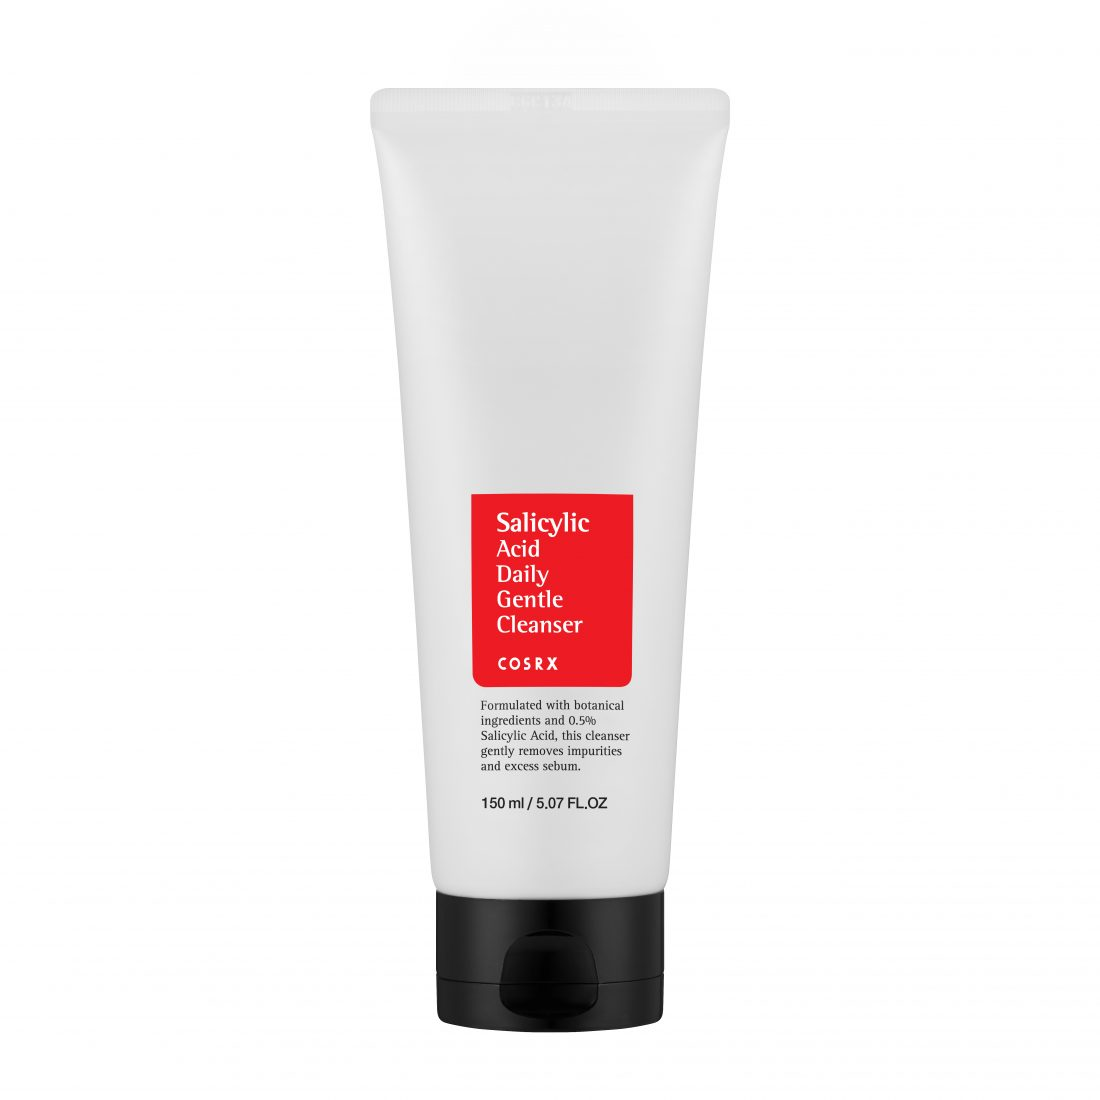 cosrx salicylic acid gentle daily cleanser STS